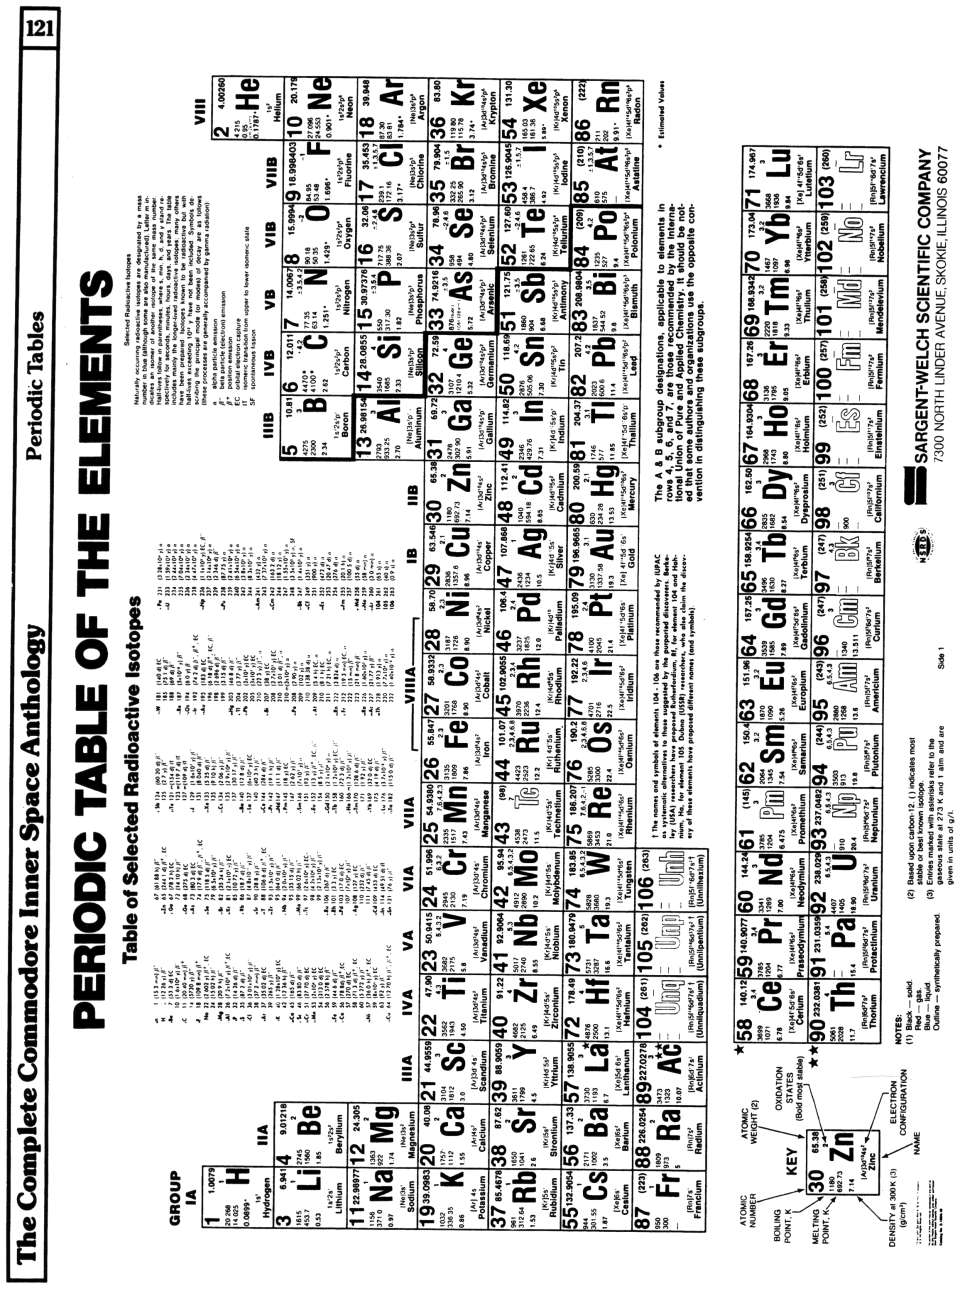 [960×1293 Arithmetic and Mathematics: Periodic Table of The Elements (1 of 2)]